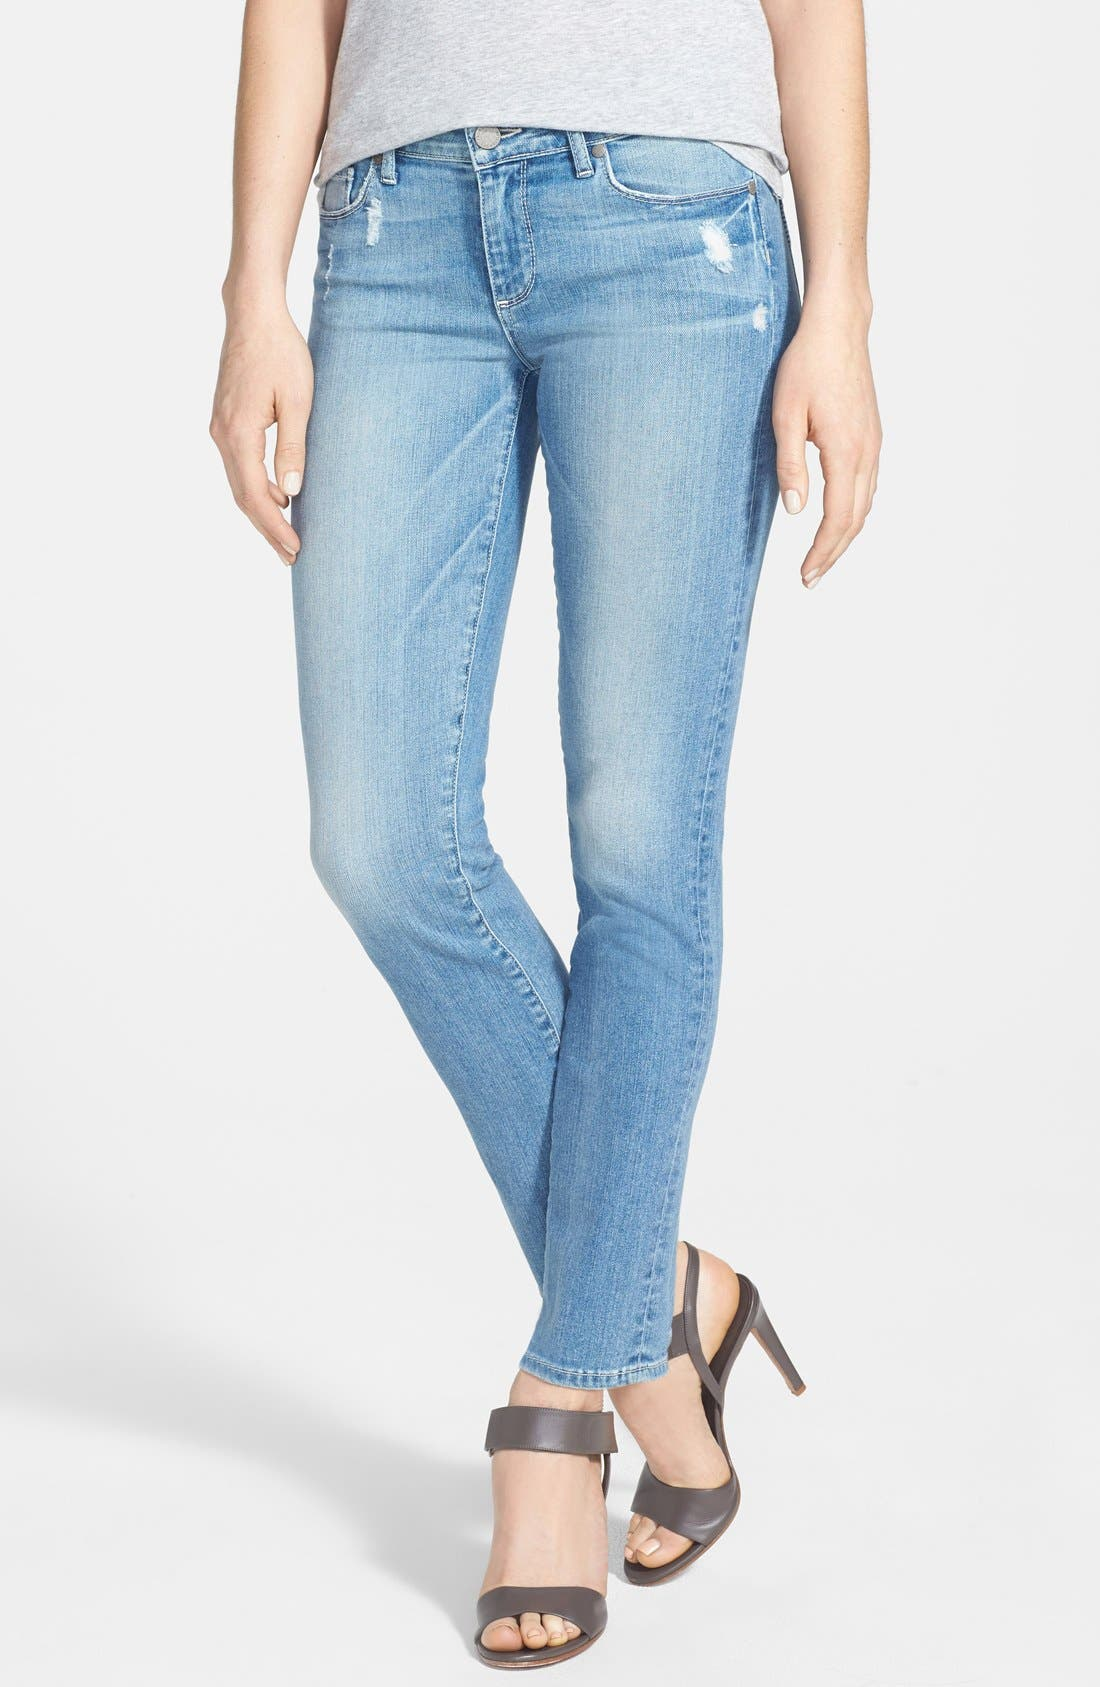 Alternate Image 1 Selected - Paige Denim 'Skyline' Ankle Peg Skinny Jeans (Whitley)